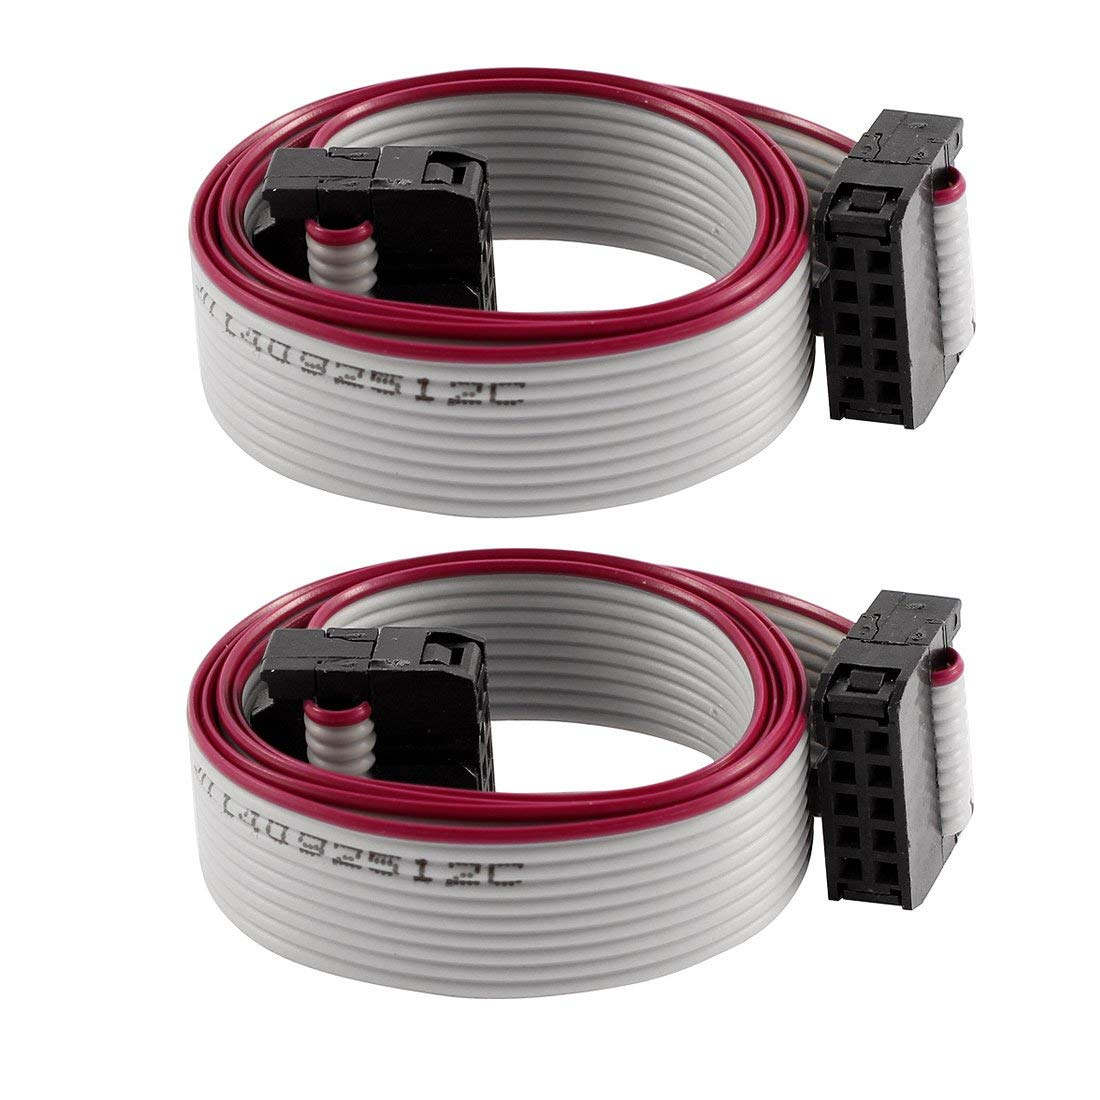 Aexit Hard Drive Bulk Cables 50cm Feamle IDC 10 Pin Extension Flat Ribbon Cable Flat Ribbon Cables 2 Pcs